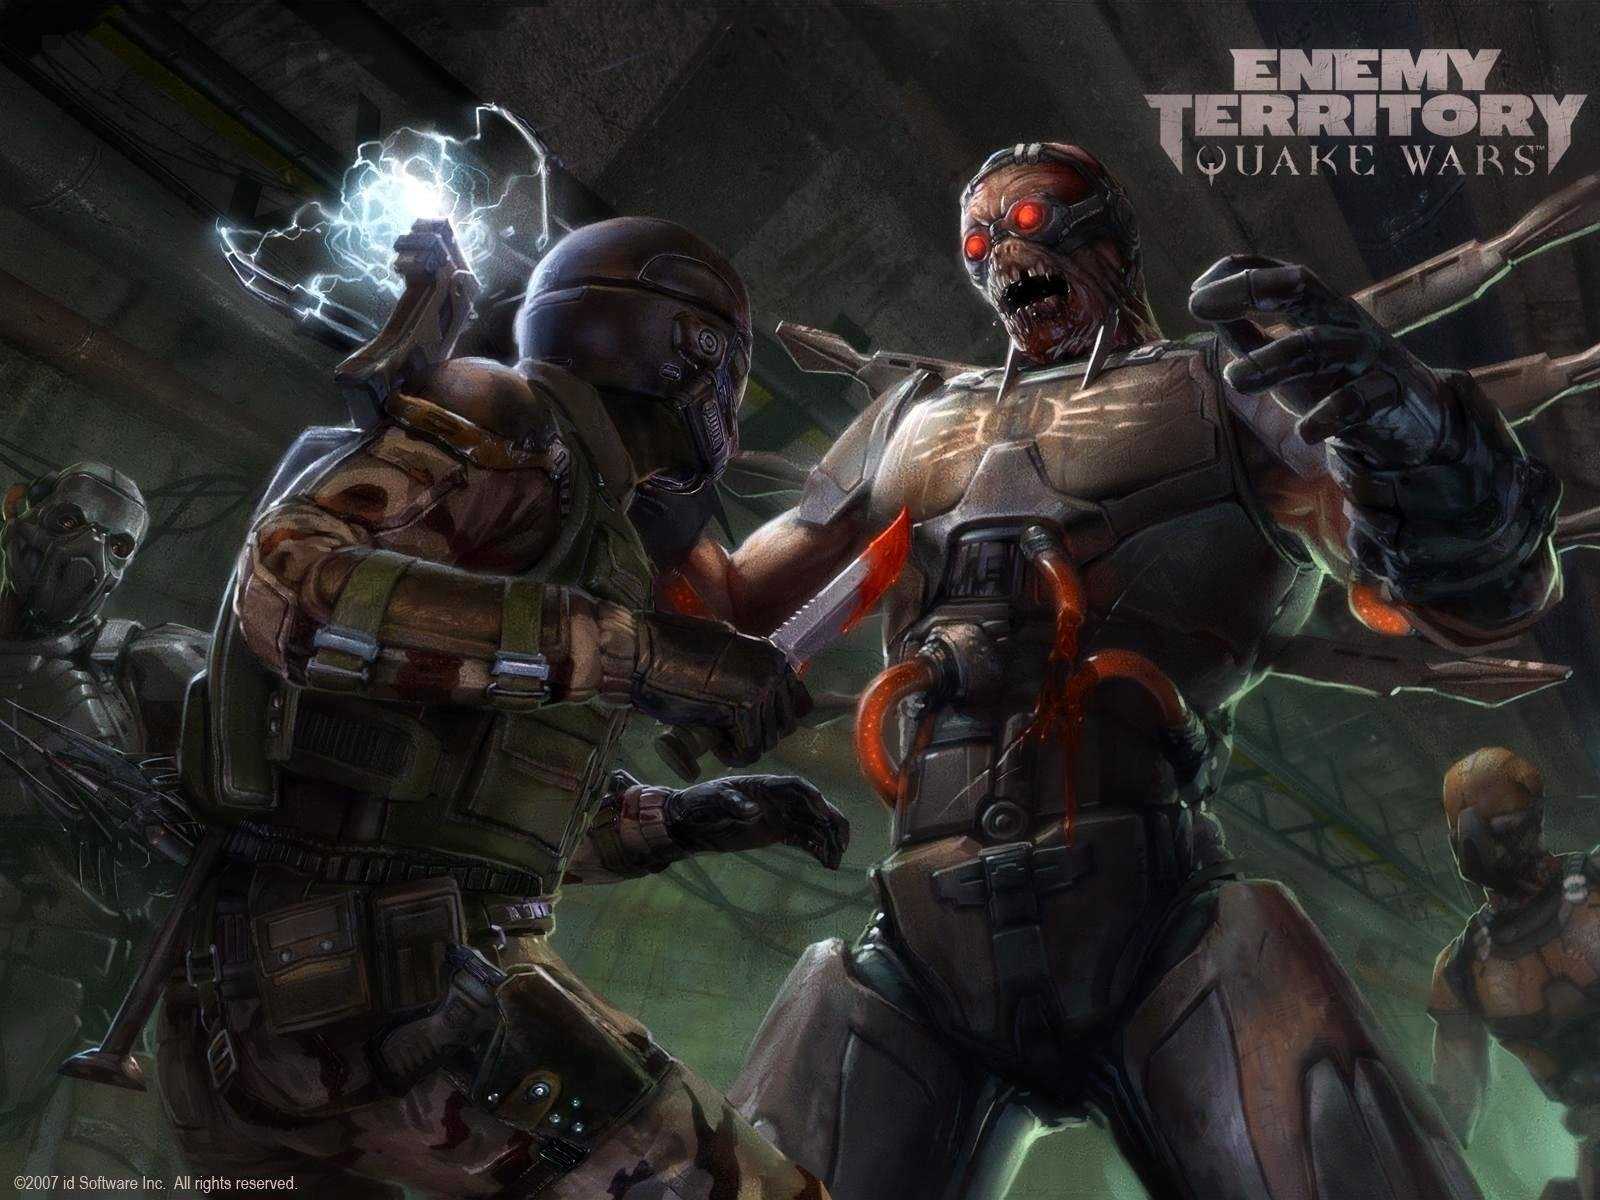 Dirty Girl Wallpaper Download Enemy Territory Quake Wars Wallpaper And Background Image